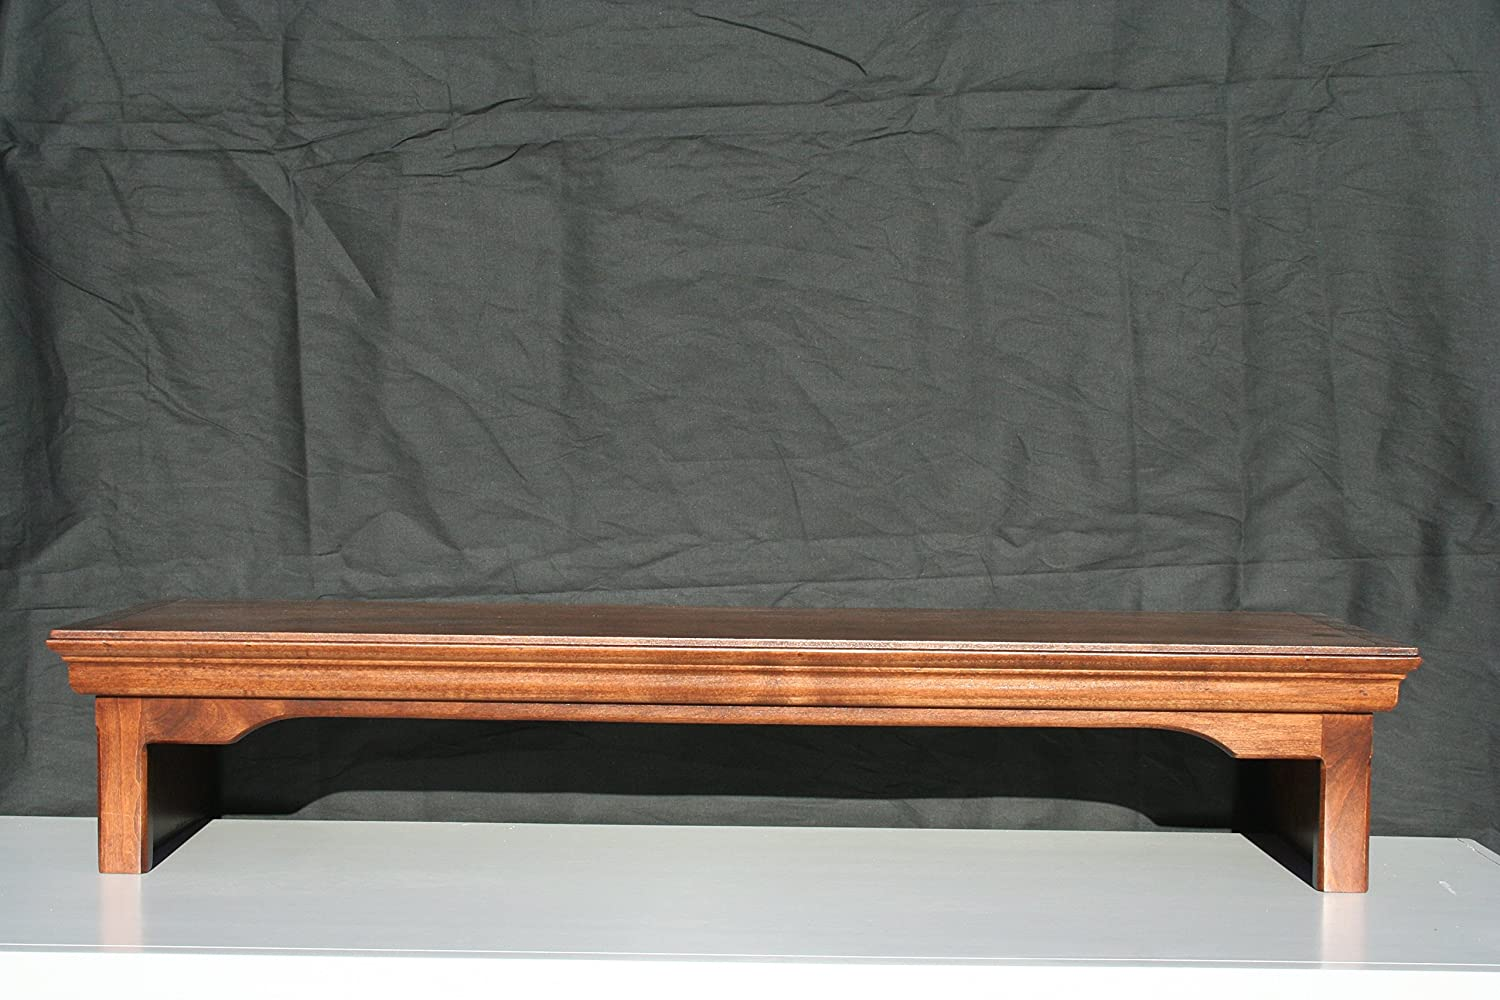 Ideas to Home TV Monitor Riser Stand Traditional Style in Alder Wood 26 Wide, Mocha